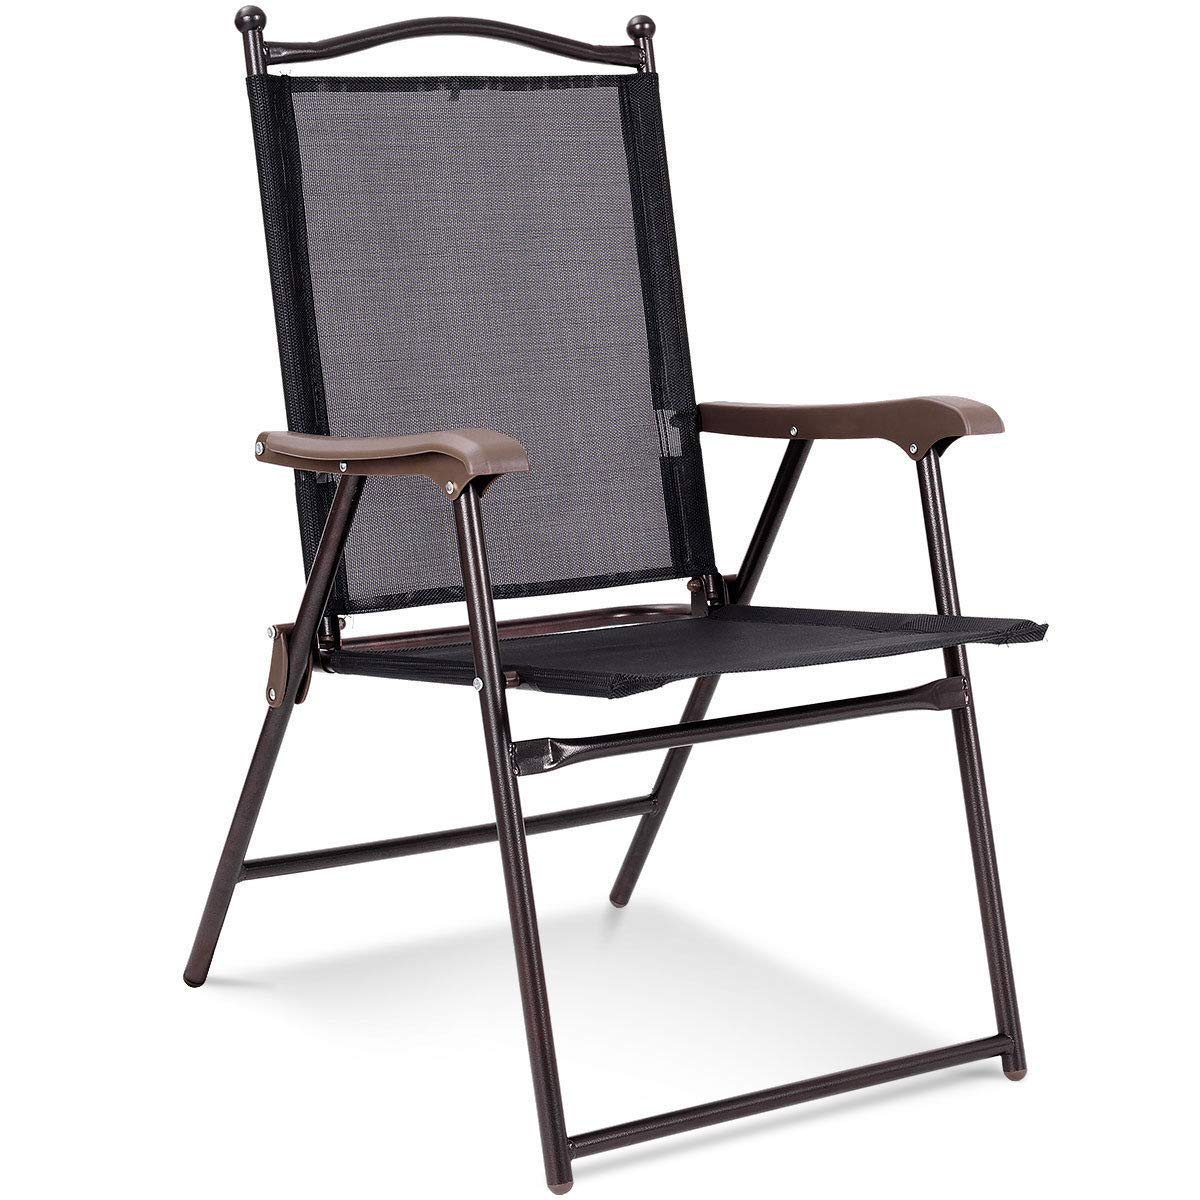 KCHEX>Set of 2 Patio Folding Sling Back Chairs Camping Deck Garden Pool Beach Black>This is Our Folding Chair which is a Perfect Choice for Your Home,Yard. Made of Steel Frame.